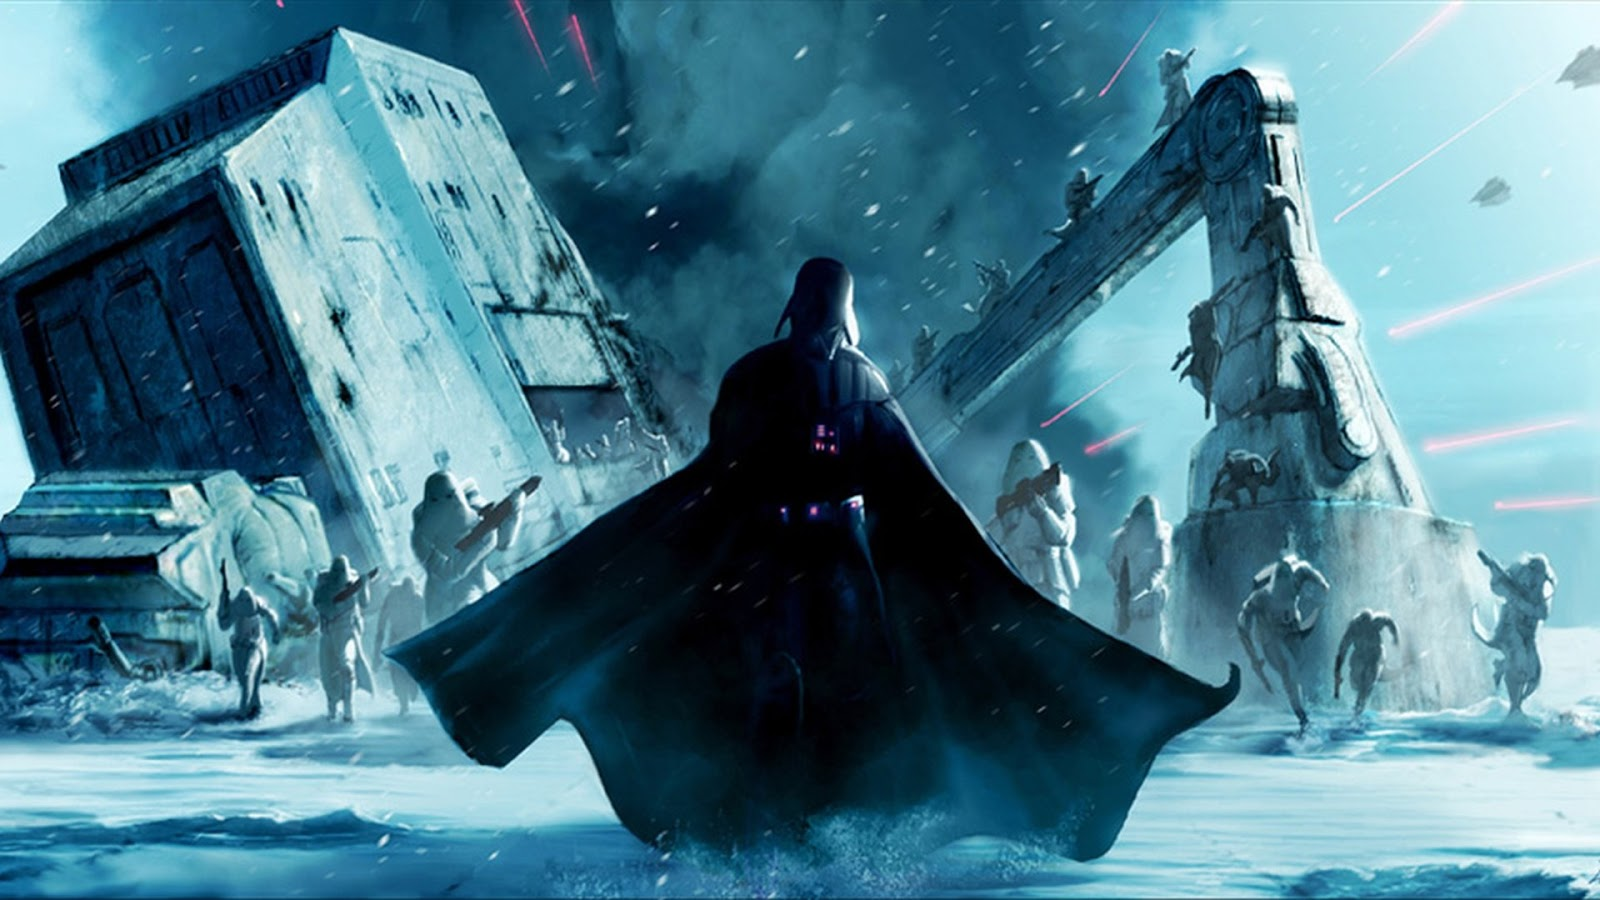 50 Star Wars Hd Wallpaper Background Images